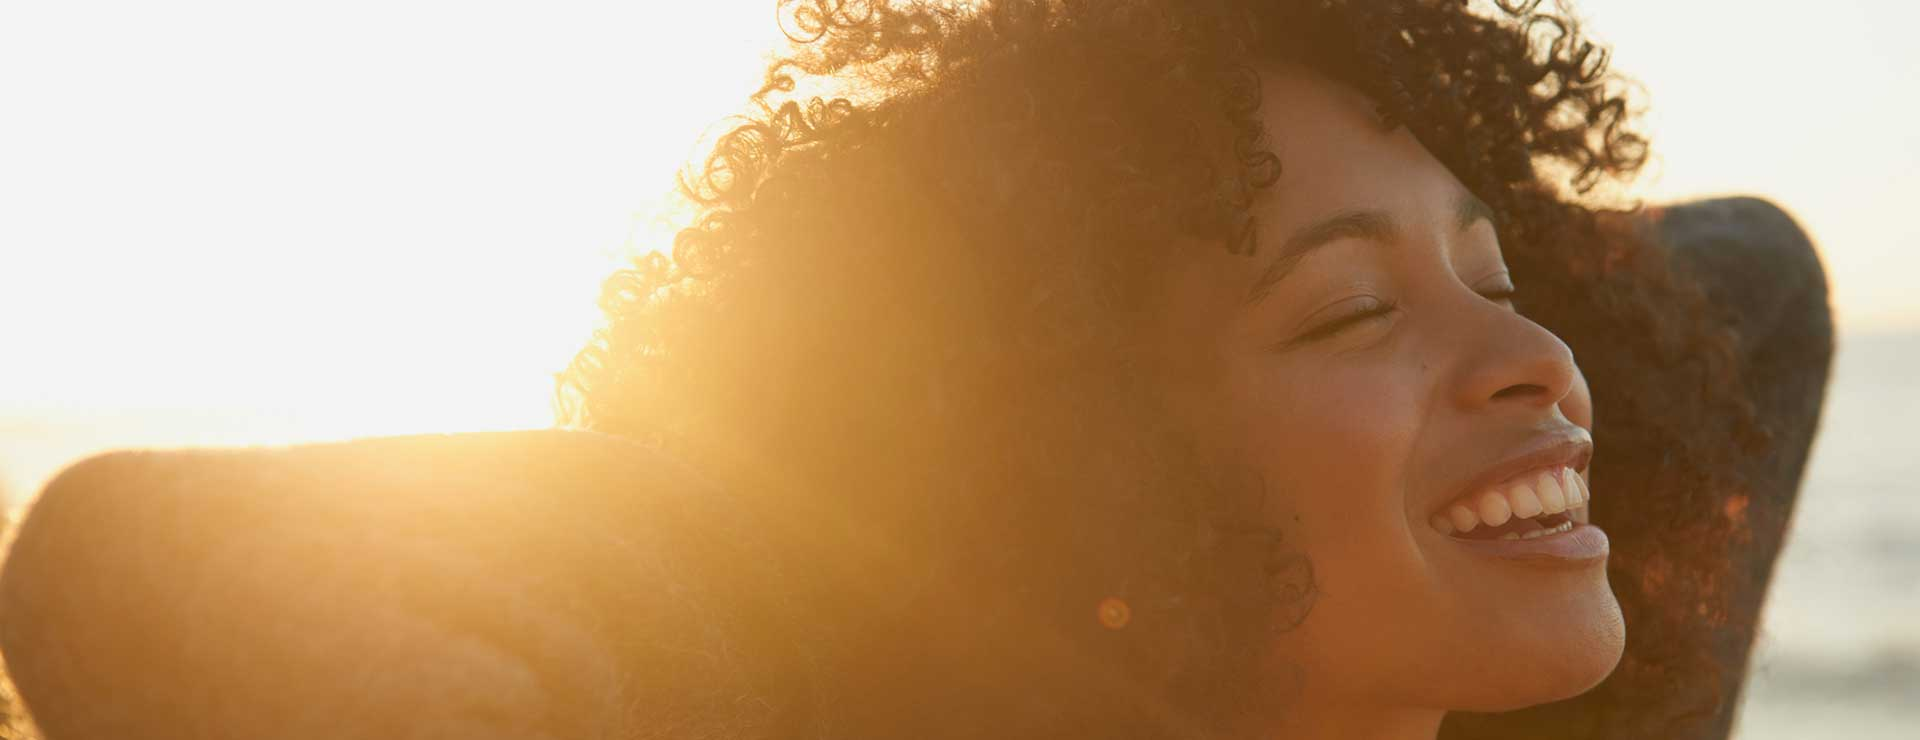 How Does Vitamin D Affect Women's Health?